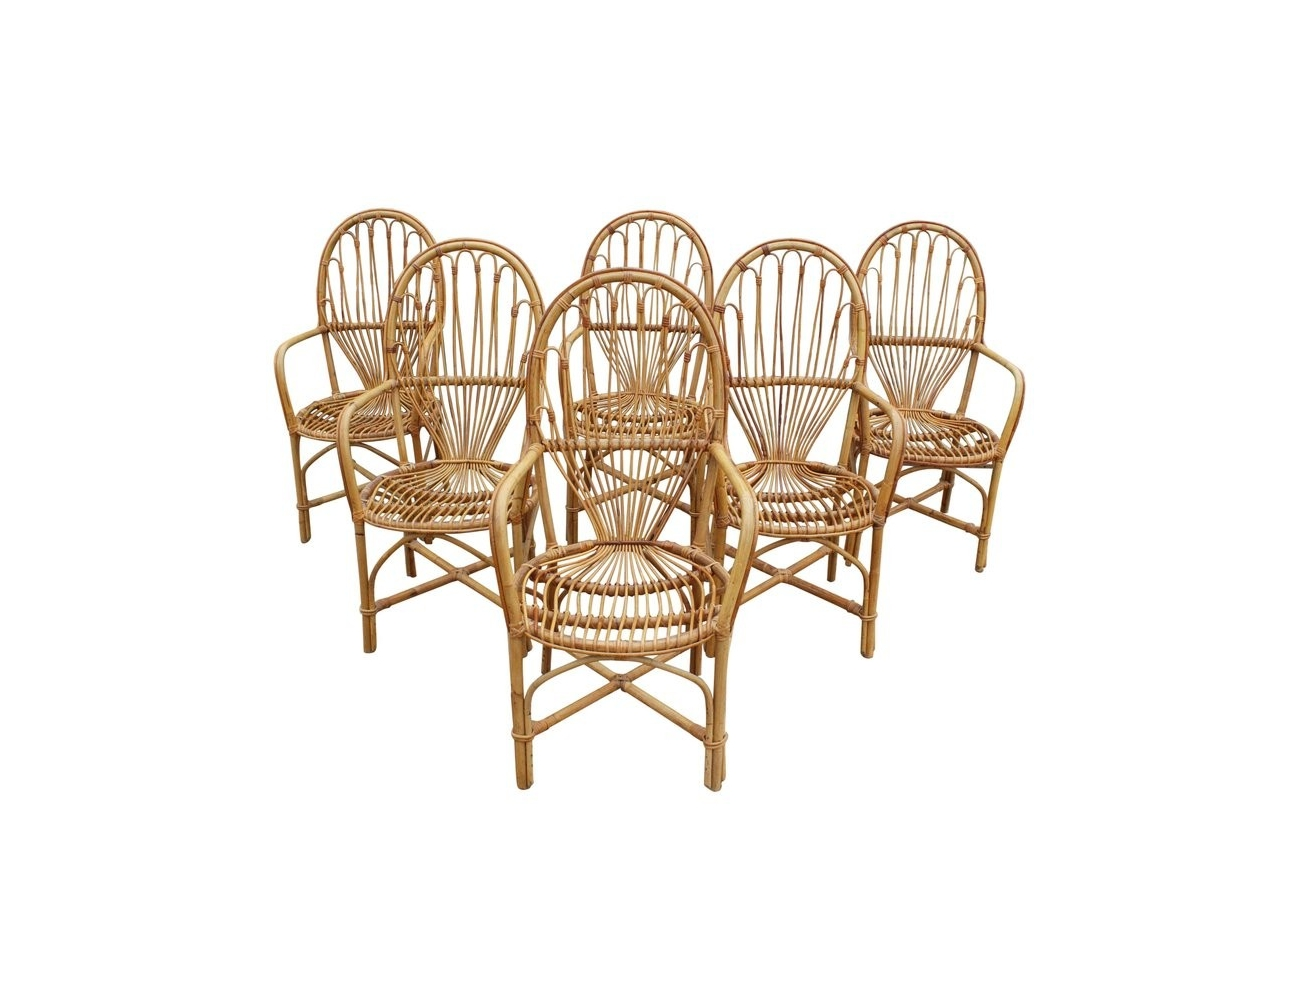 1970s Set Of Six French Handcrafted Bamboo And Wicker Chairs